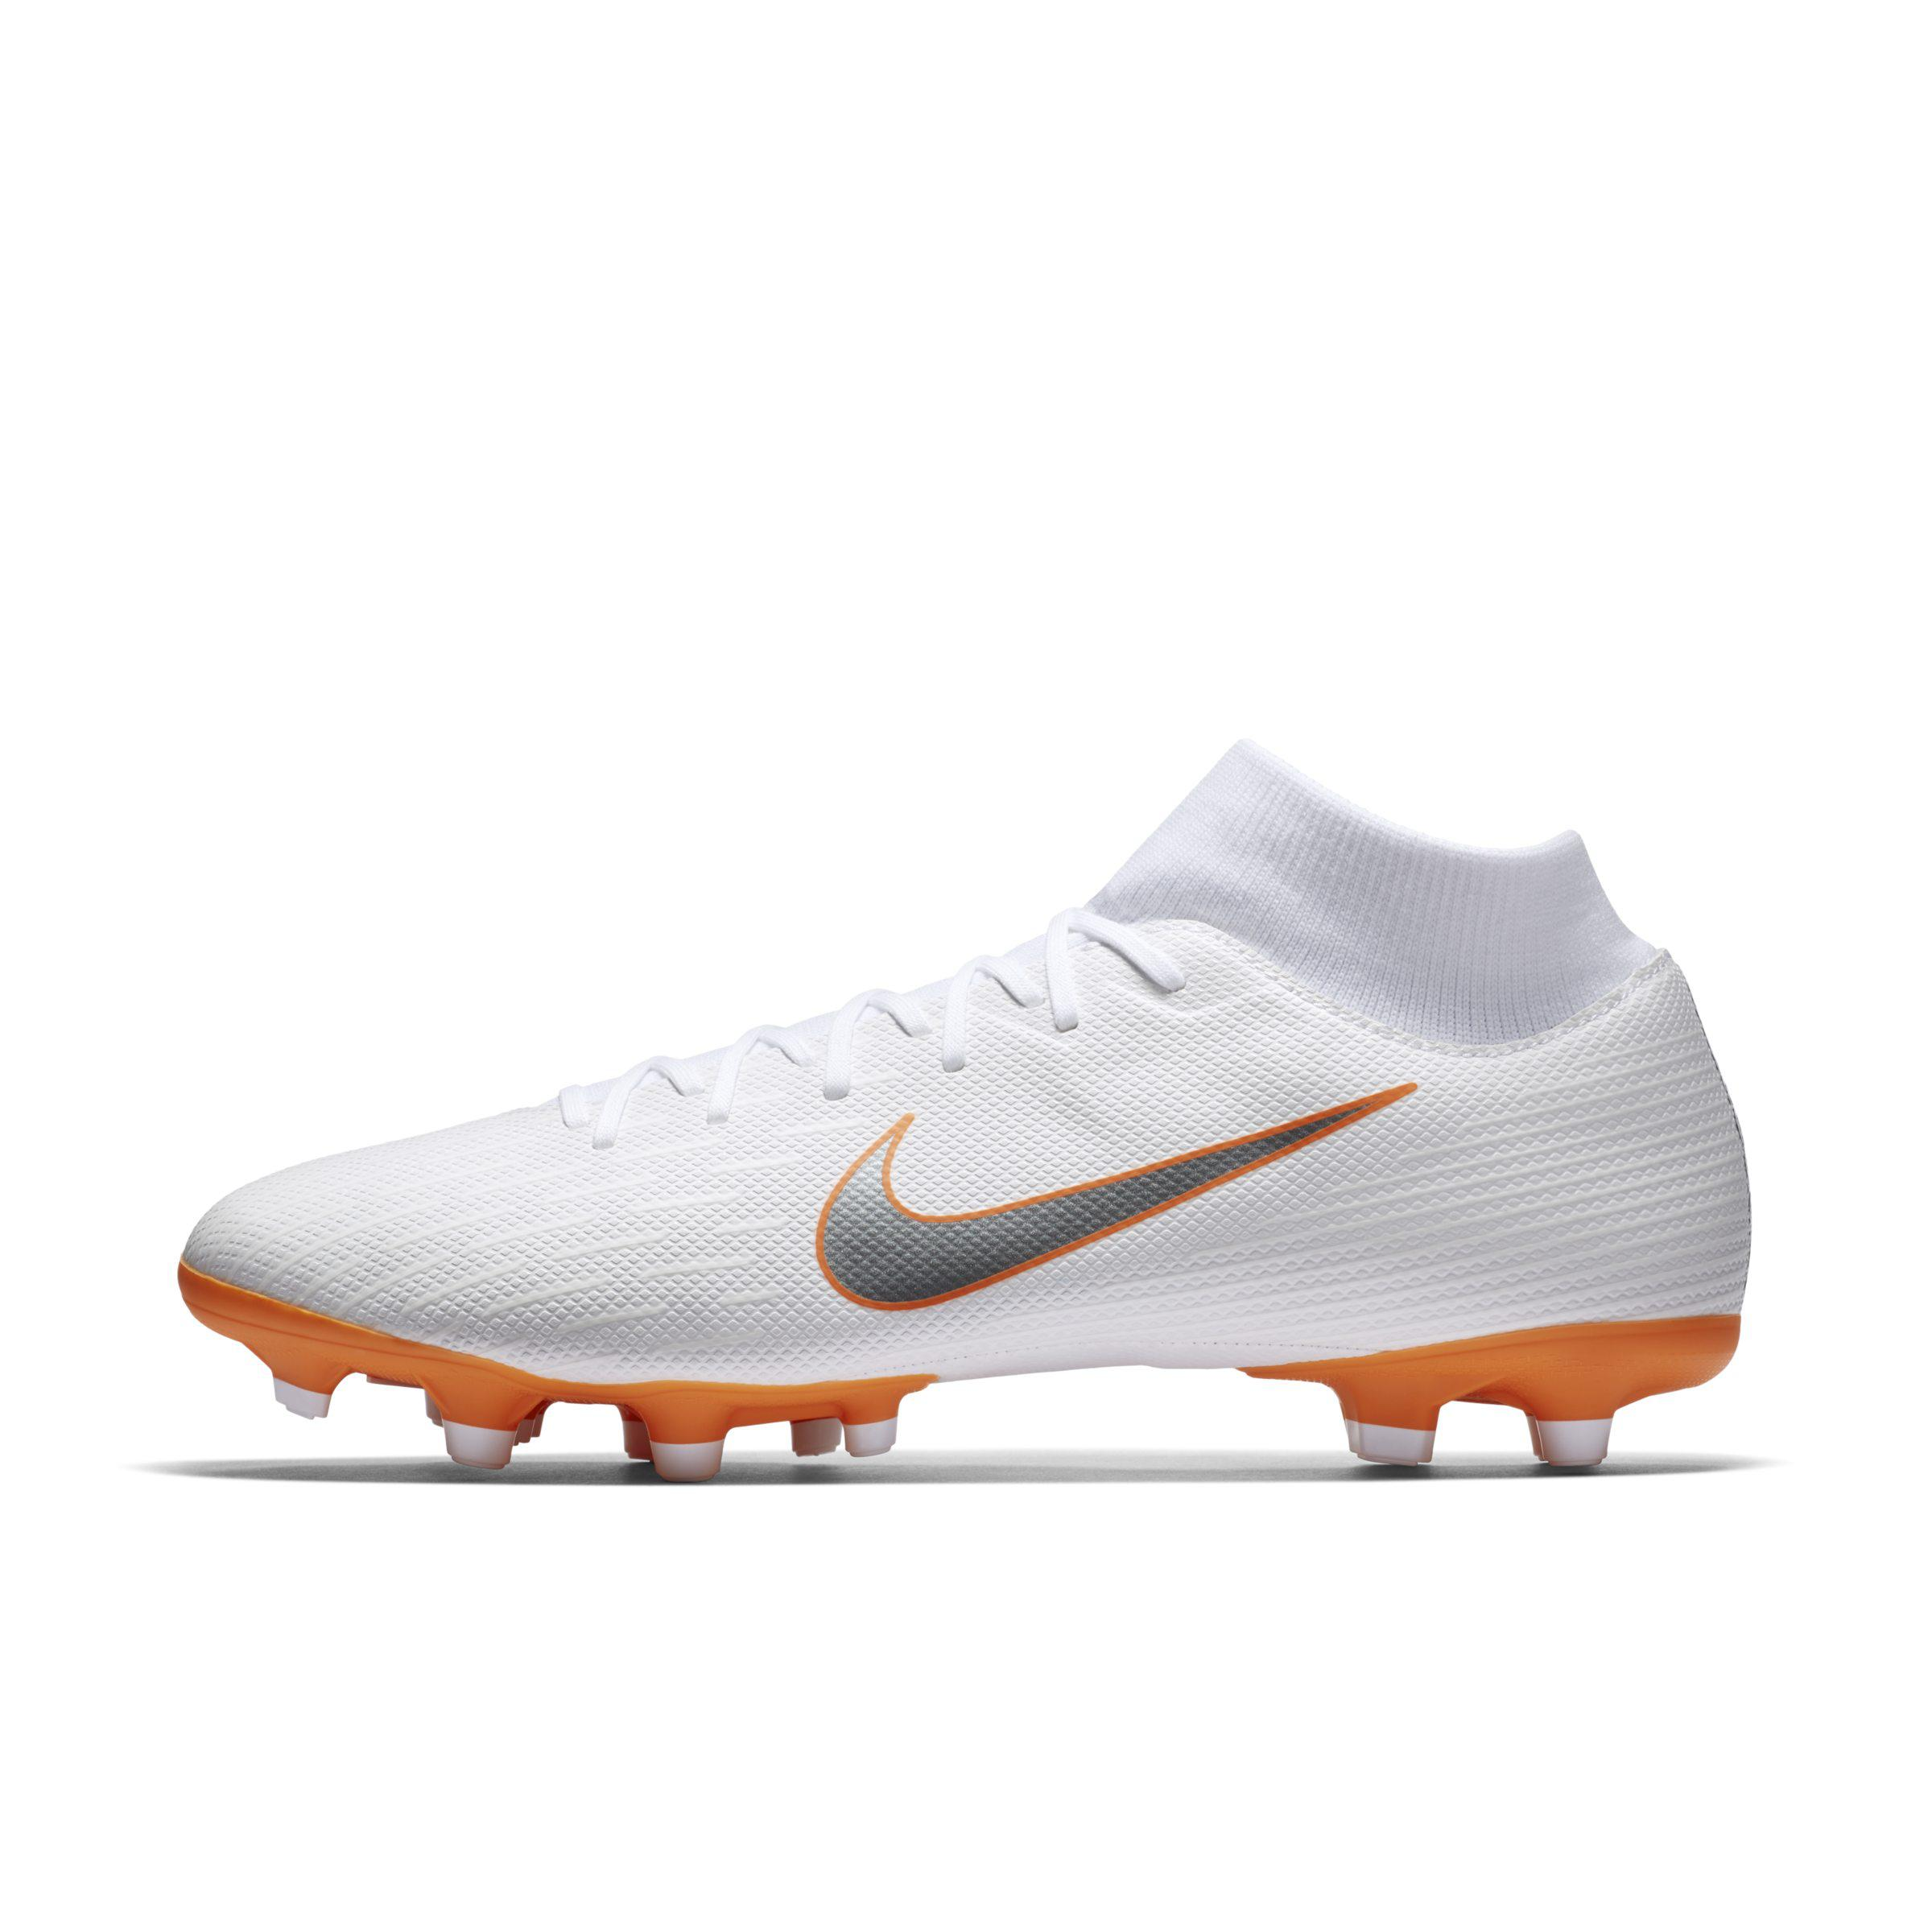 super popular b3411 1561e Nike Mercurial Superfly Vi Academy Mg Just Do It Multi-ground ...